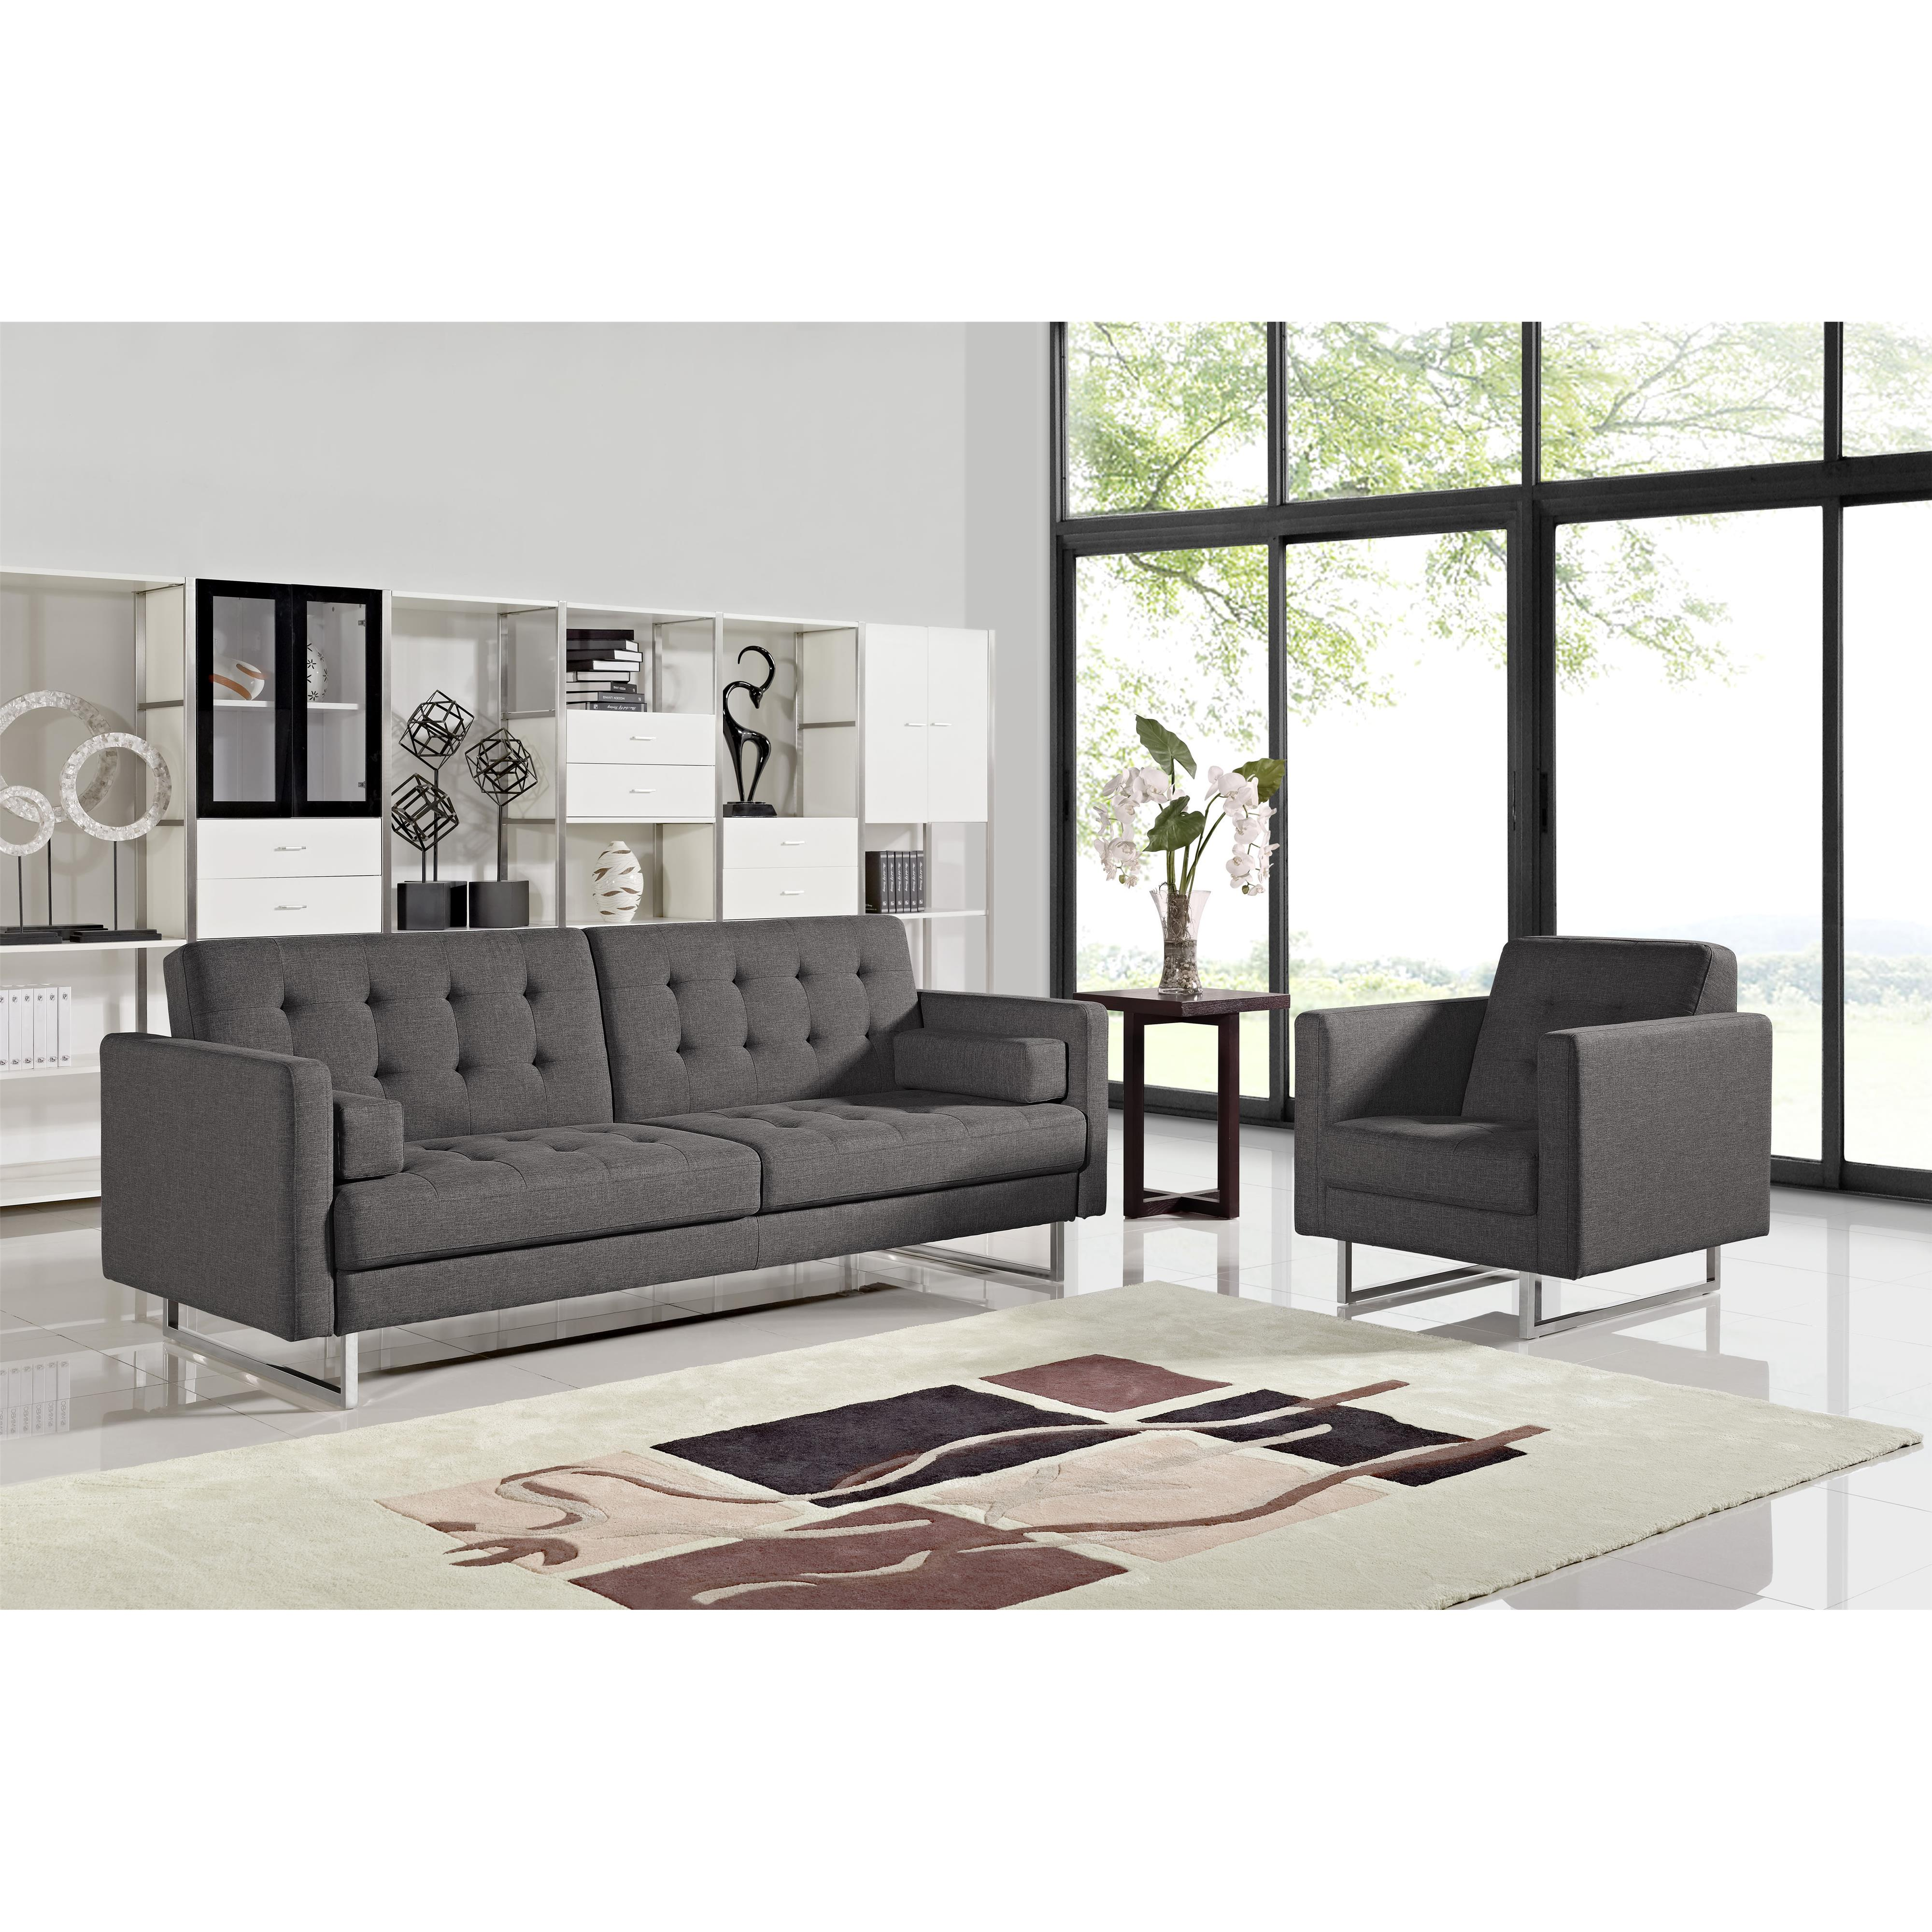 Diamond Sofa Opus Convertible Tufted Sofa with Chair 2PC  - Item Number: OPUSSCGR